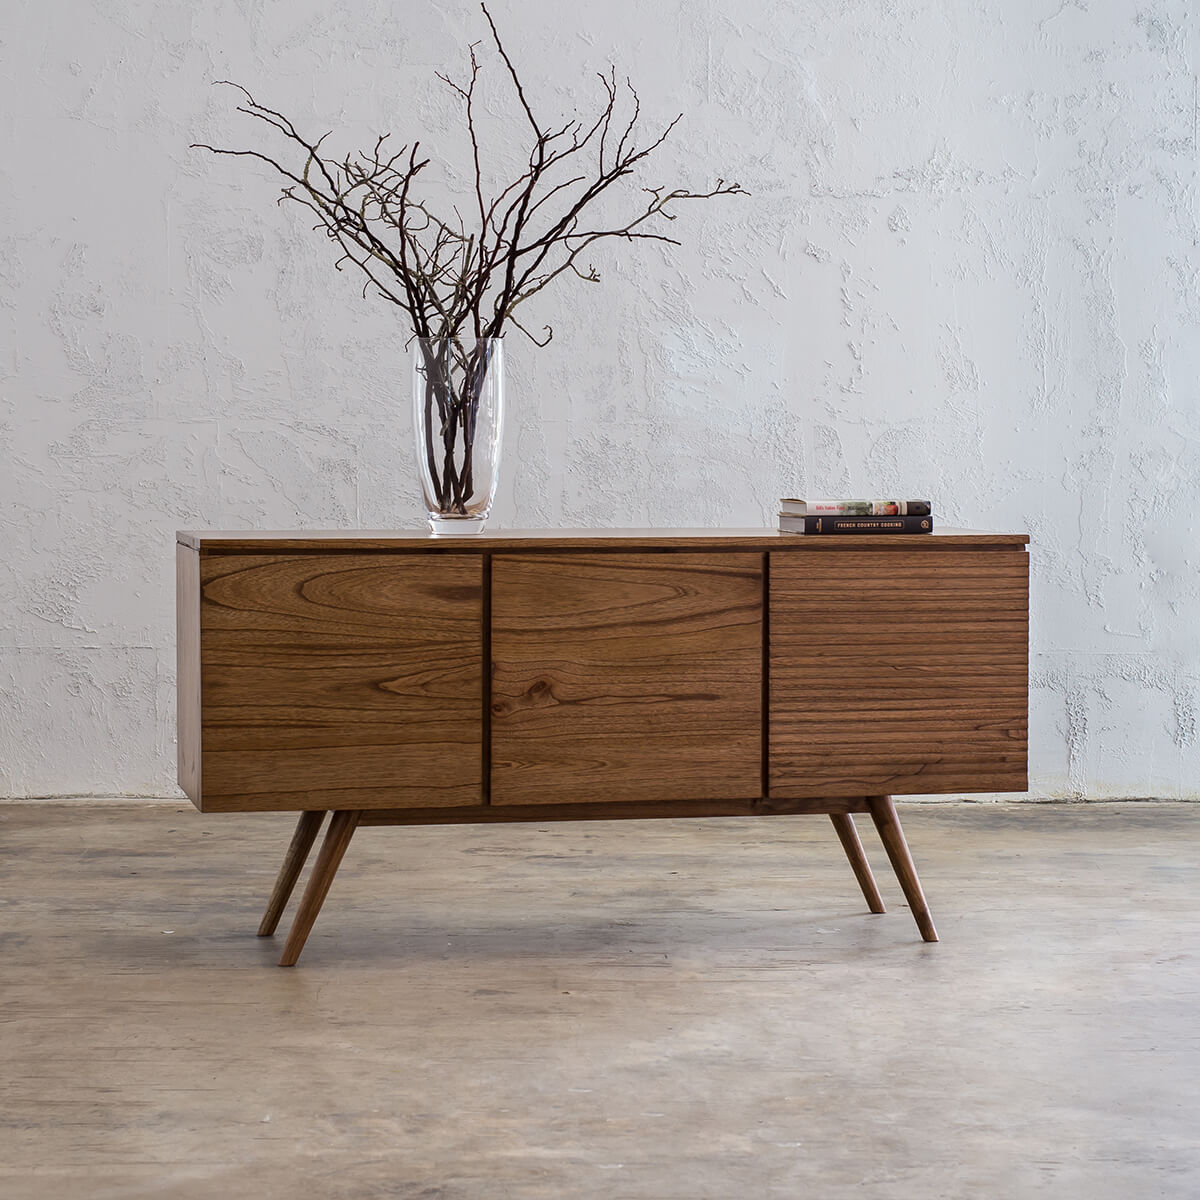 AMARA MID CENTURY TIMBER BUFFET  |  3 DOOR SIDEBOARD CABINET